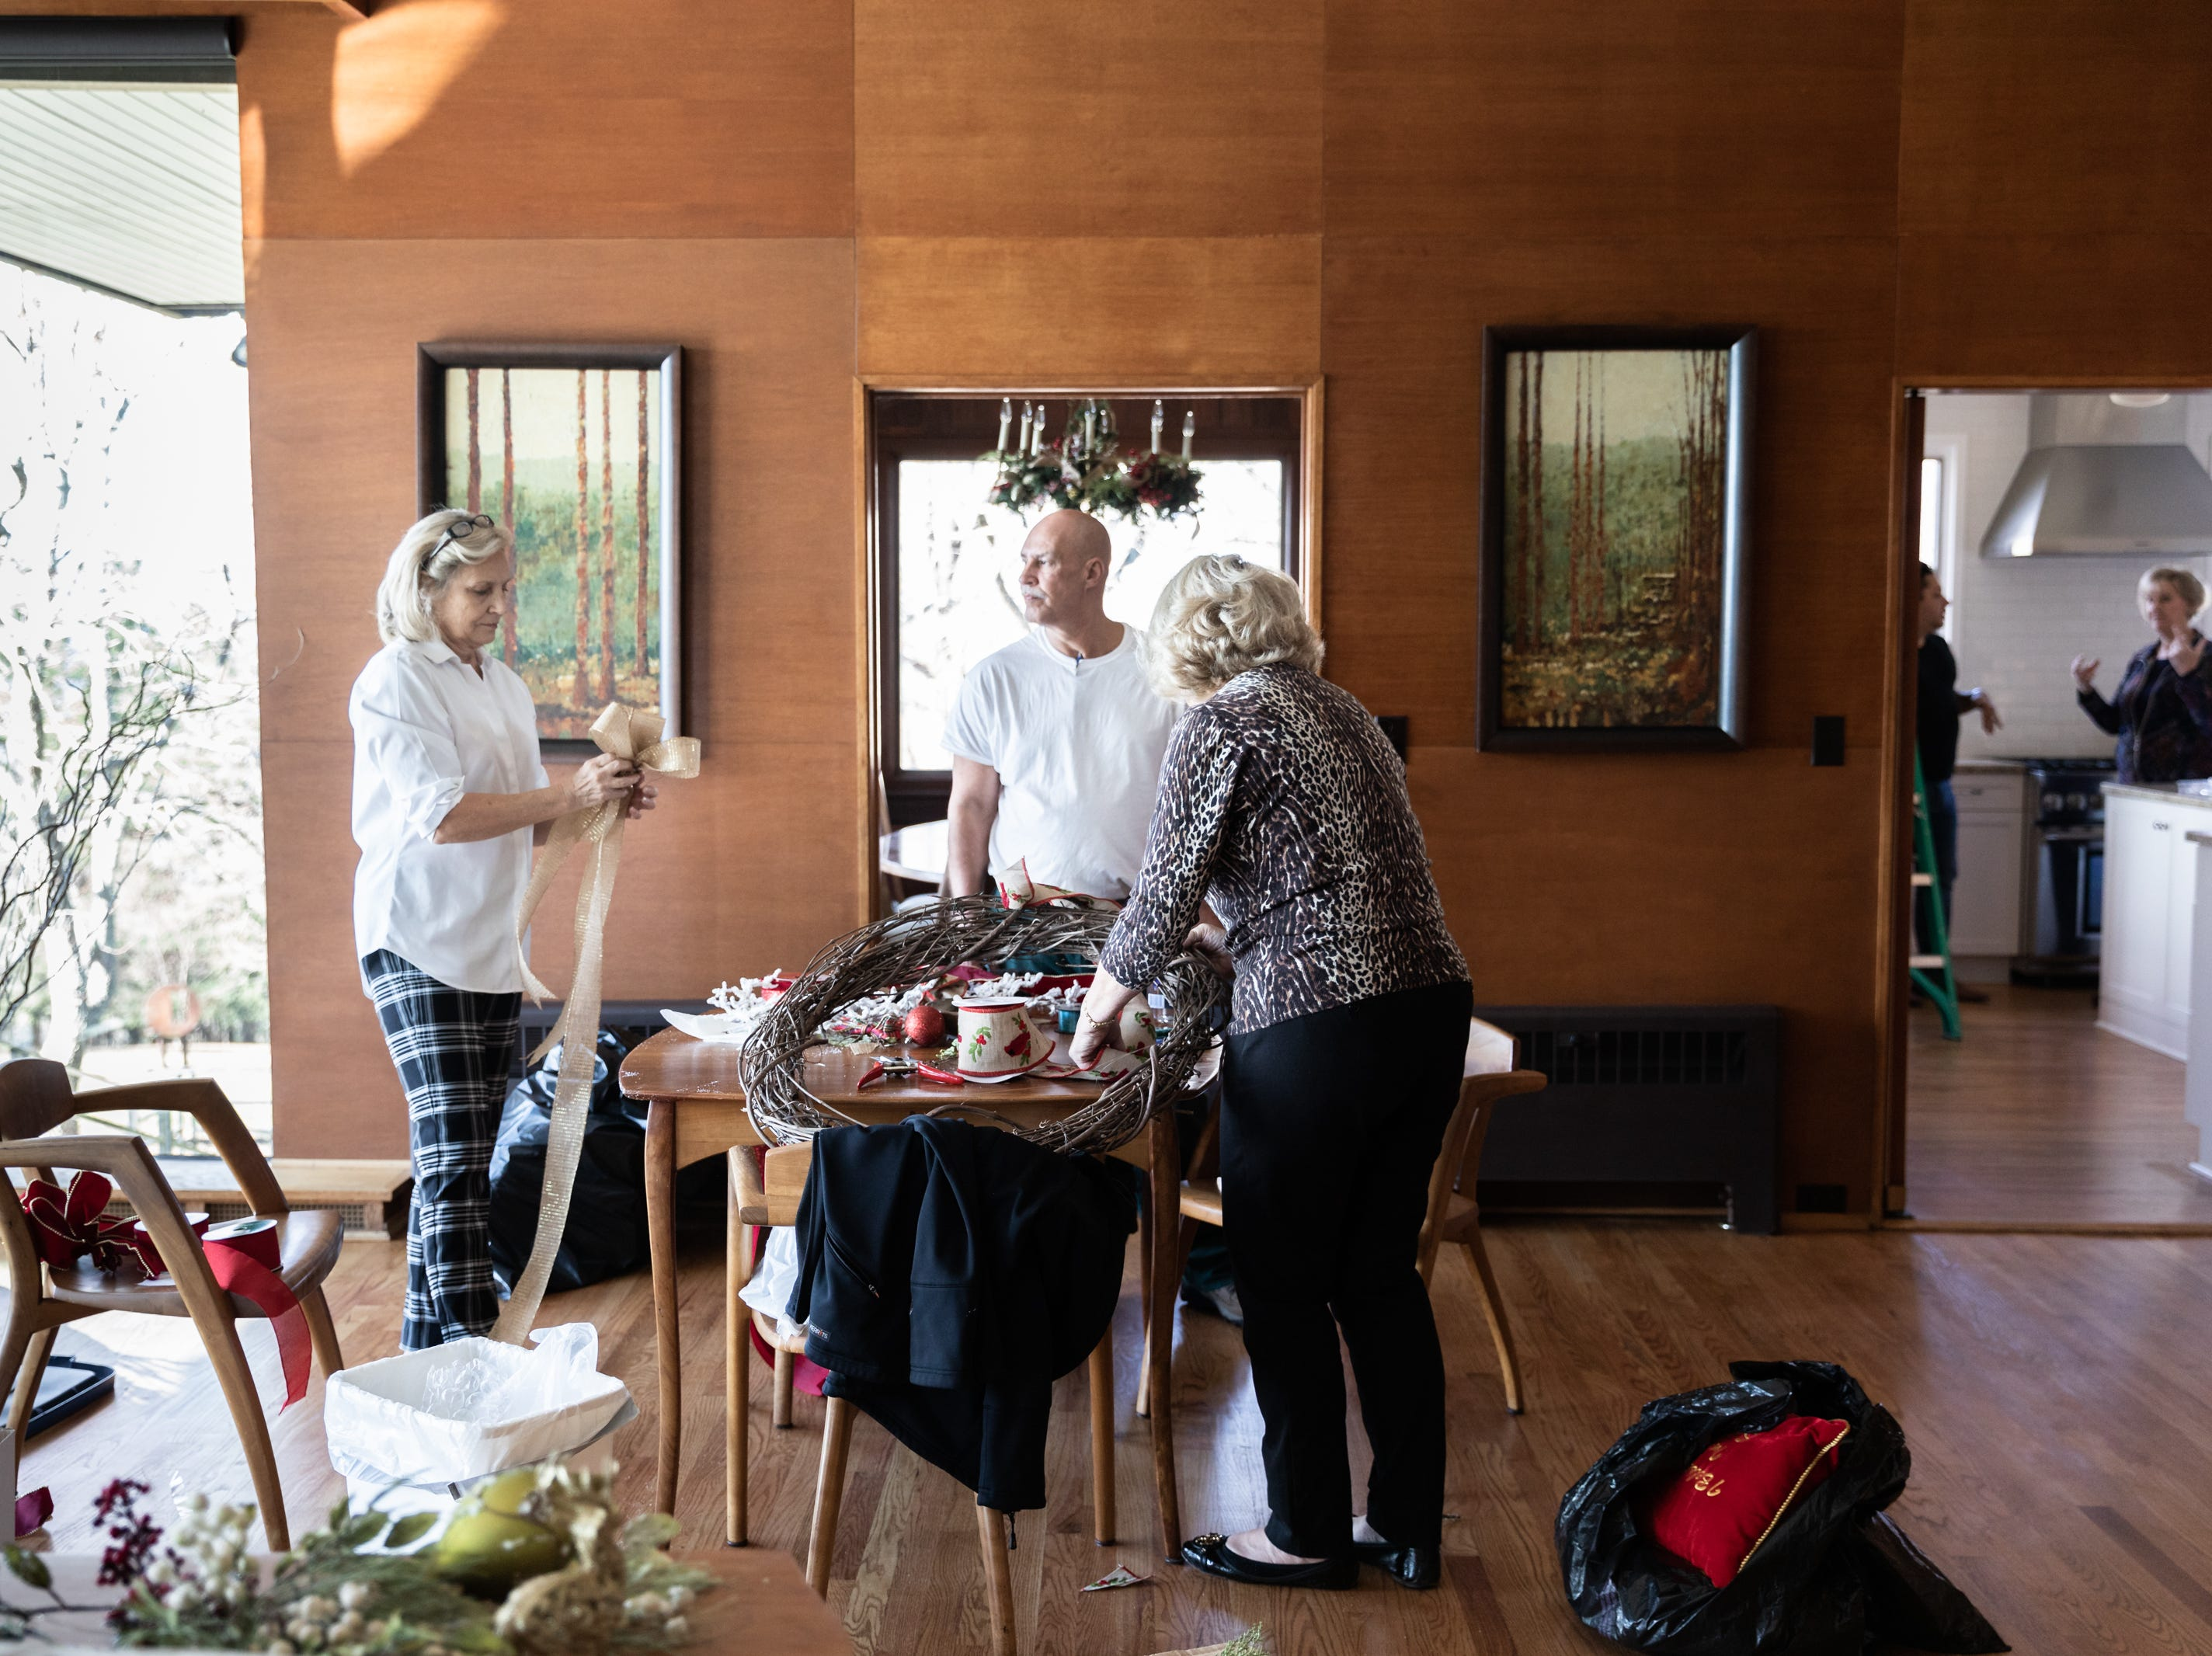 Kaye Myers, of Asheville, Tony Hartsell, of Asheville and June Ray, of Waynesville, members of the Governor's Western Residence Board of Directors, work on assembling decorations for the holidays at the residence, Nov. 29, 2018.